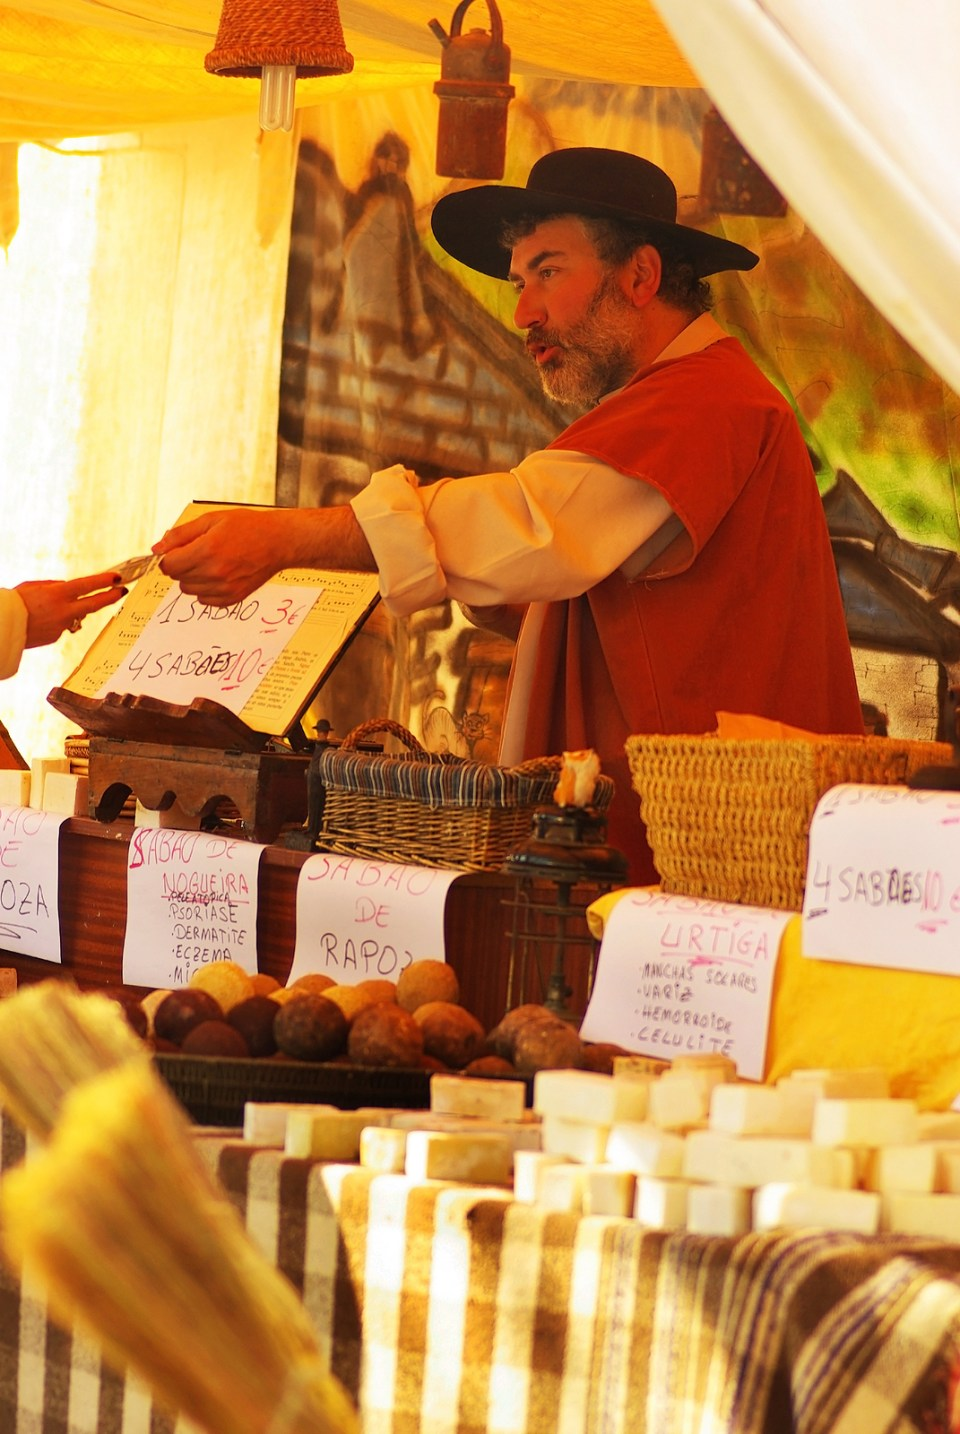 Portuguese and Azores Food Stand at Festival on Sao Miguel Island